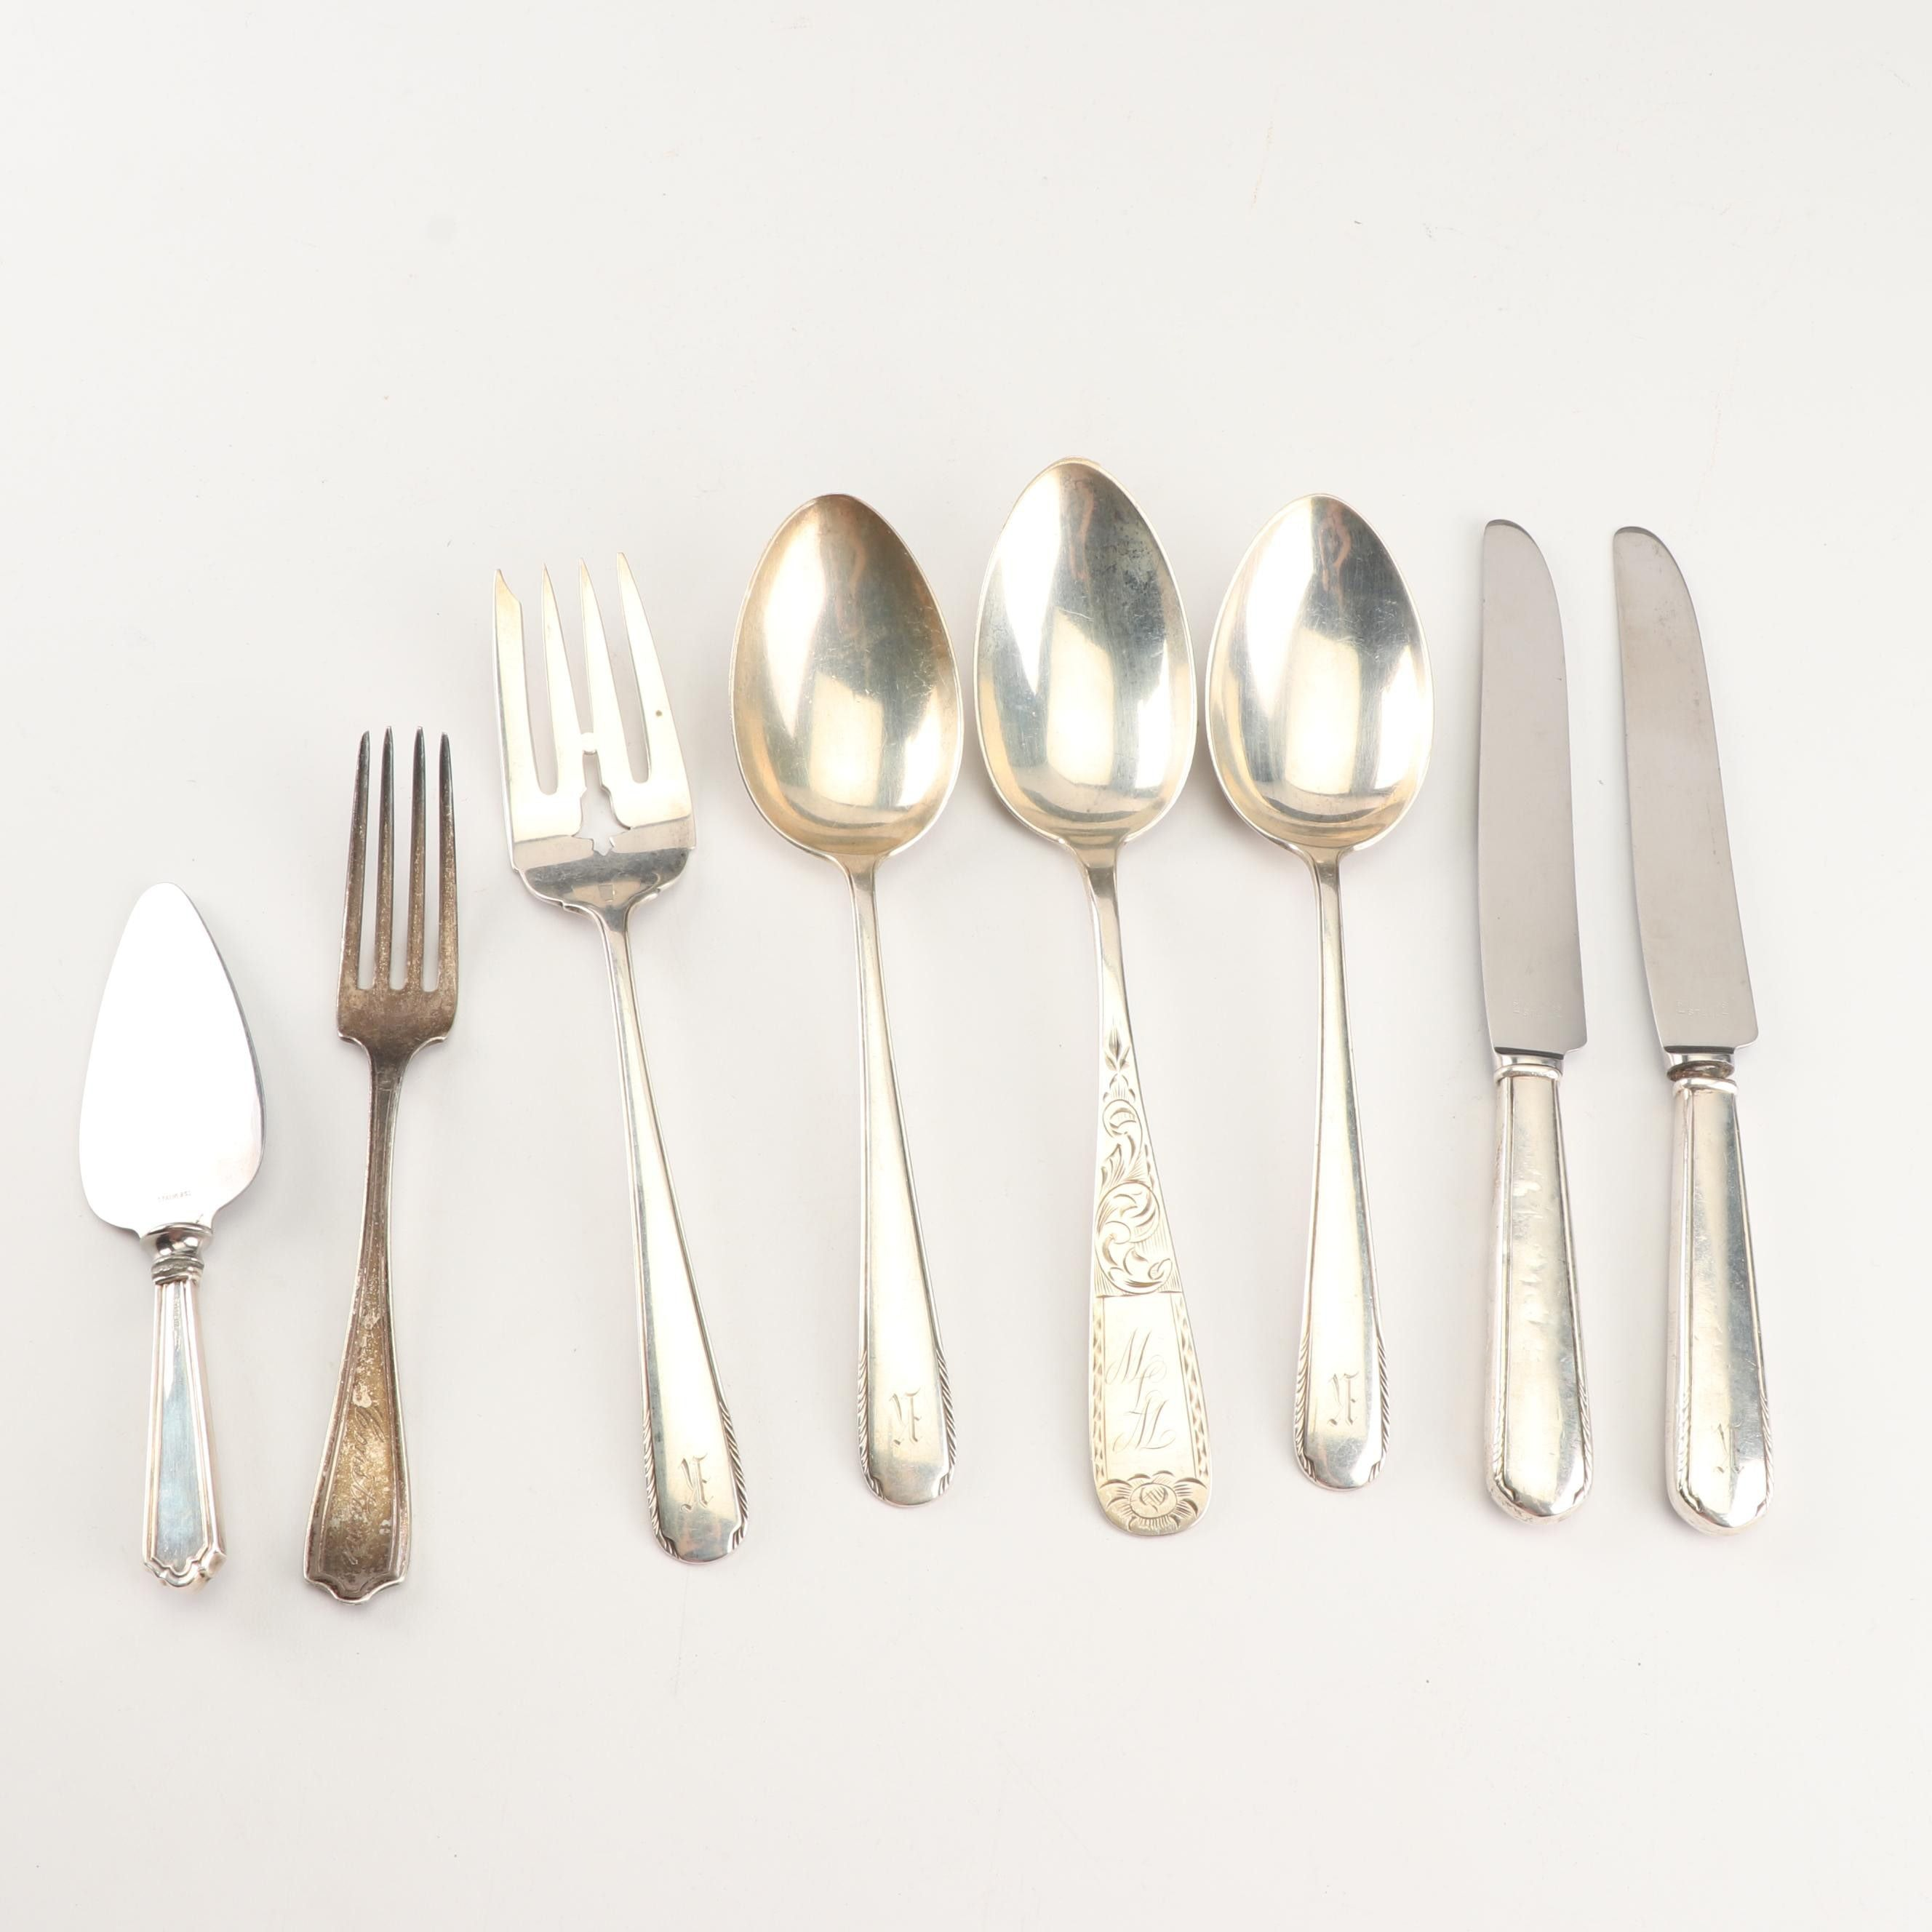 Sterling Silver Flatware and Serving Utensils featuring Manchester Silver Co.